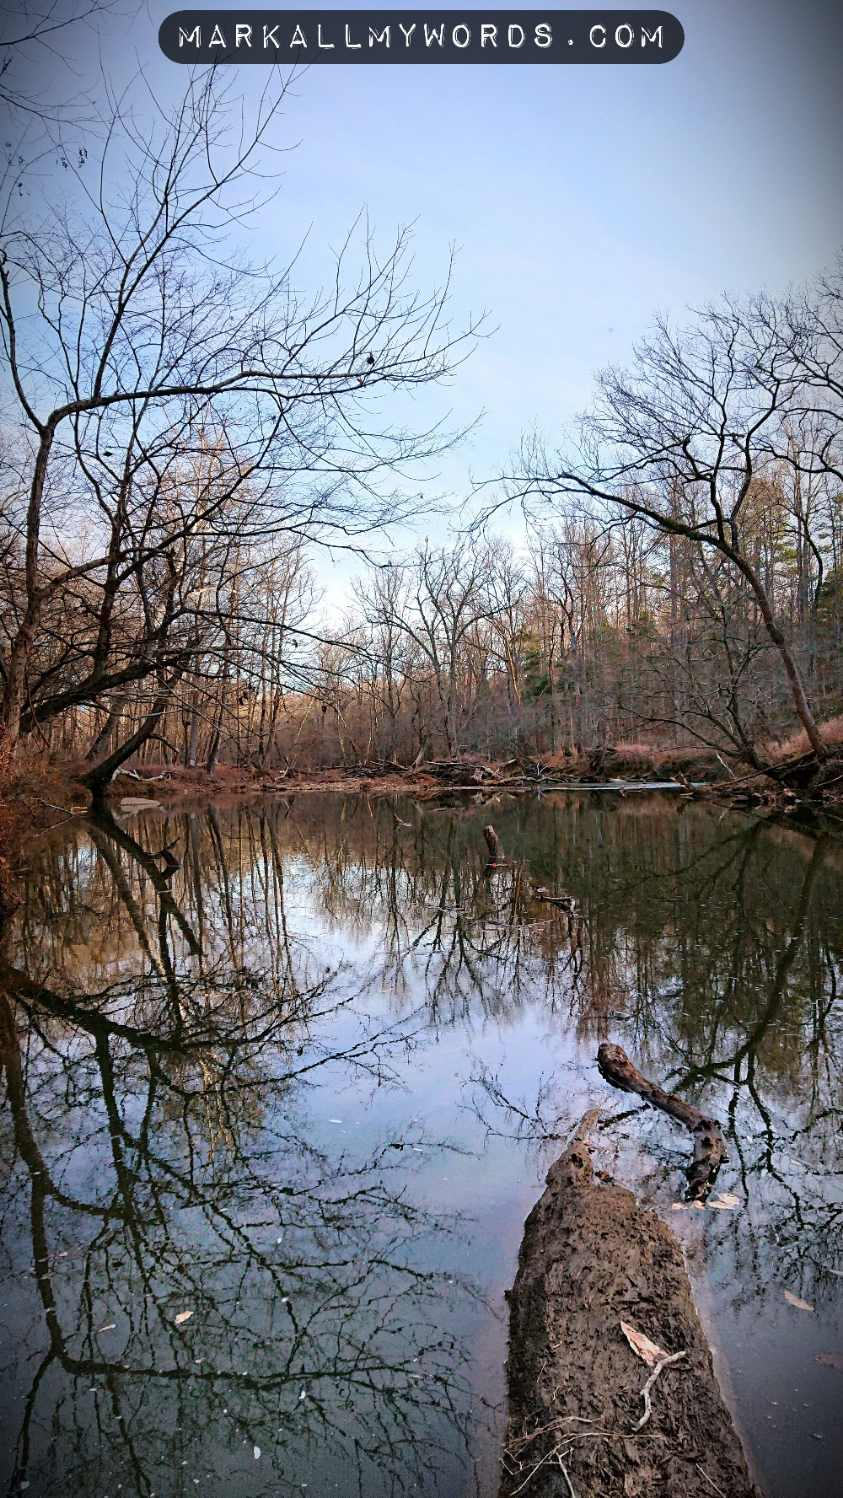 Eno River in winter